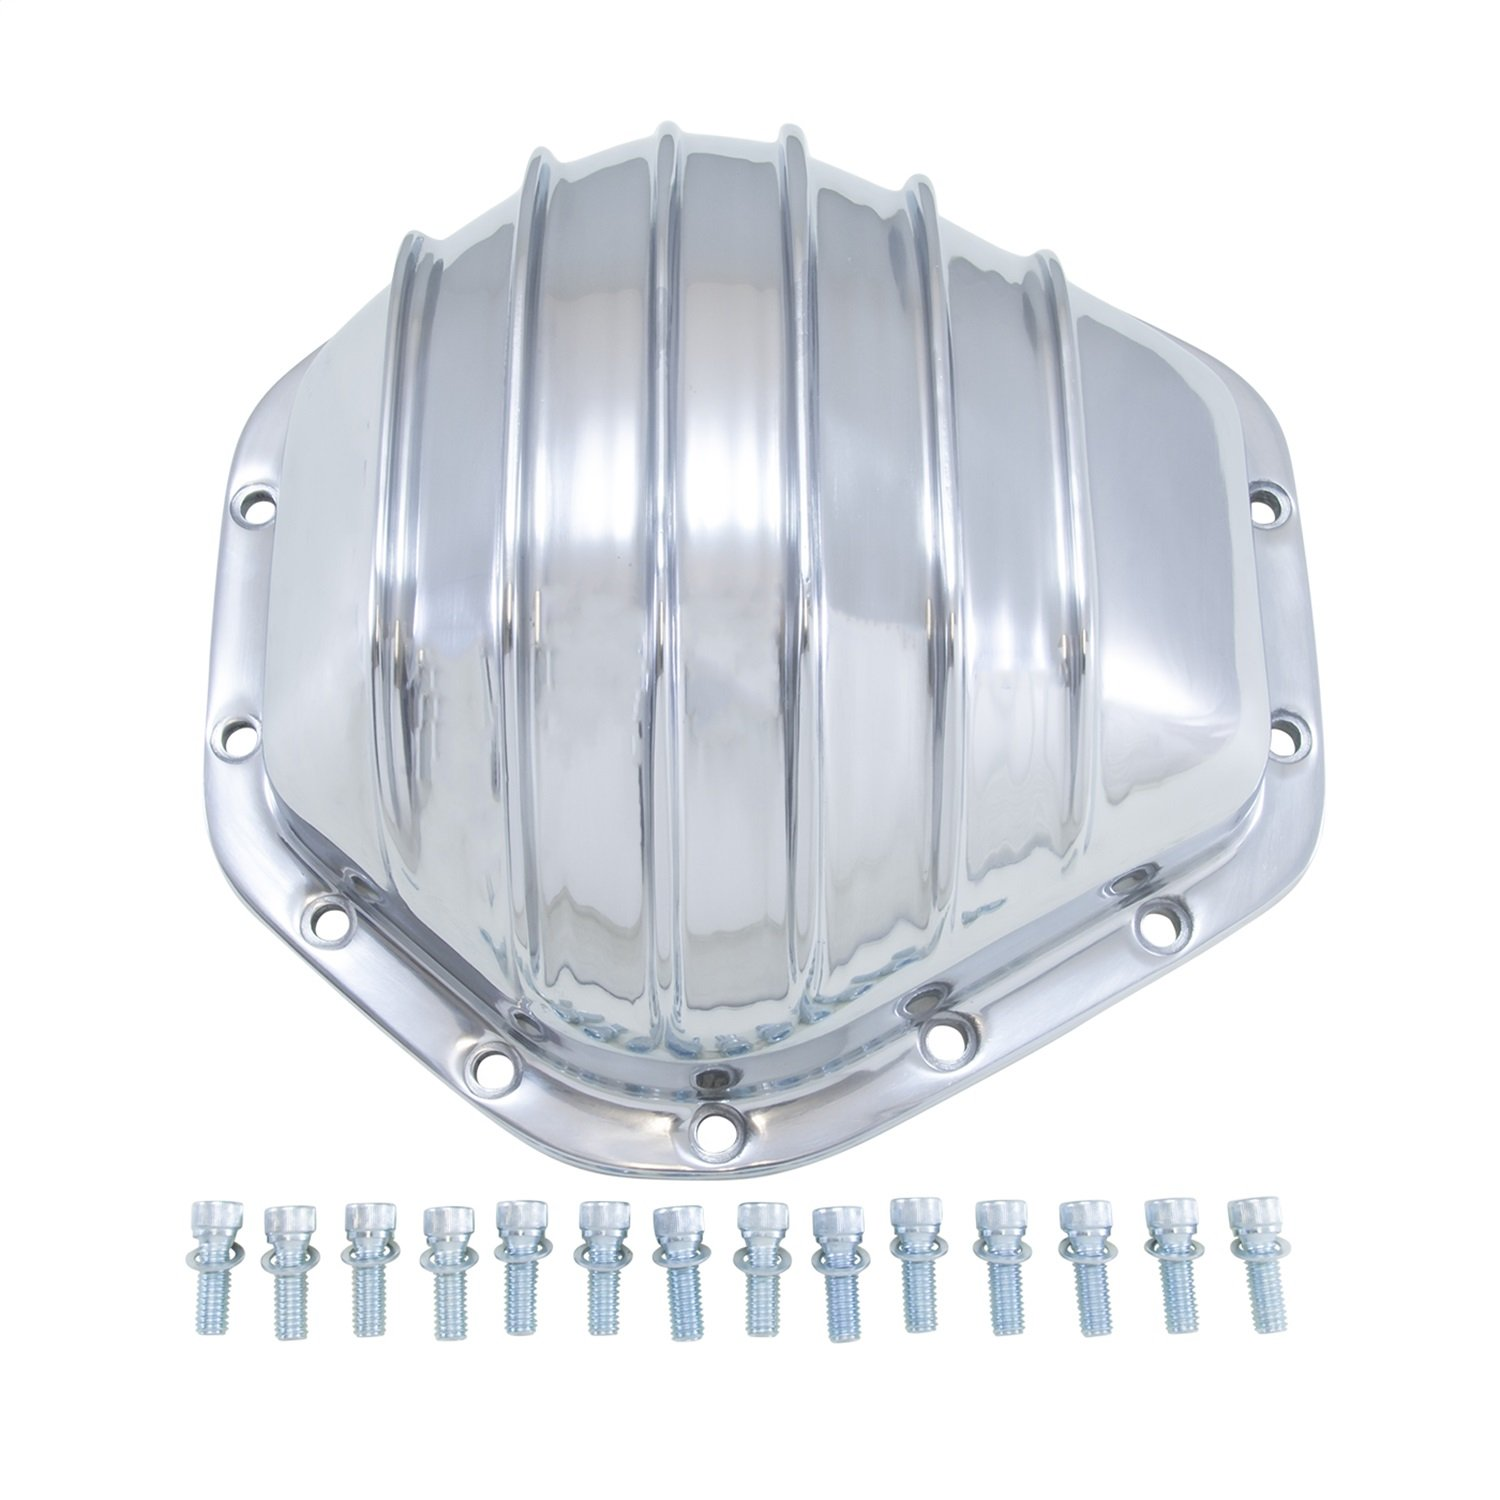 """Yukon (YP C2-GM14T) Polished Aluminum Cover for GM 14-Bolt Truck 10.5"""" Differential"""